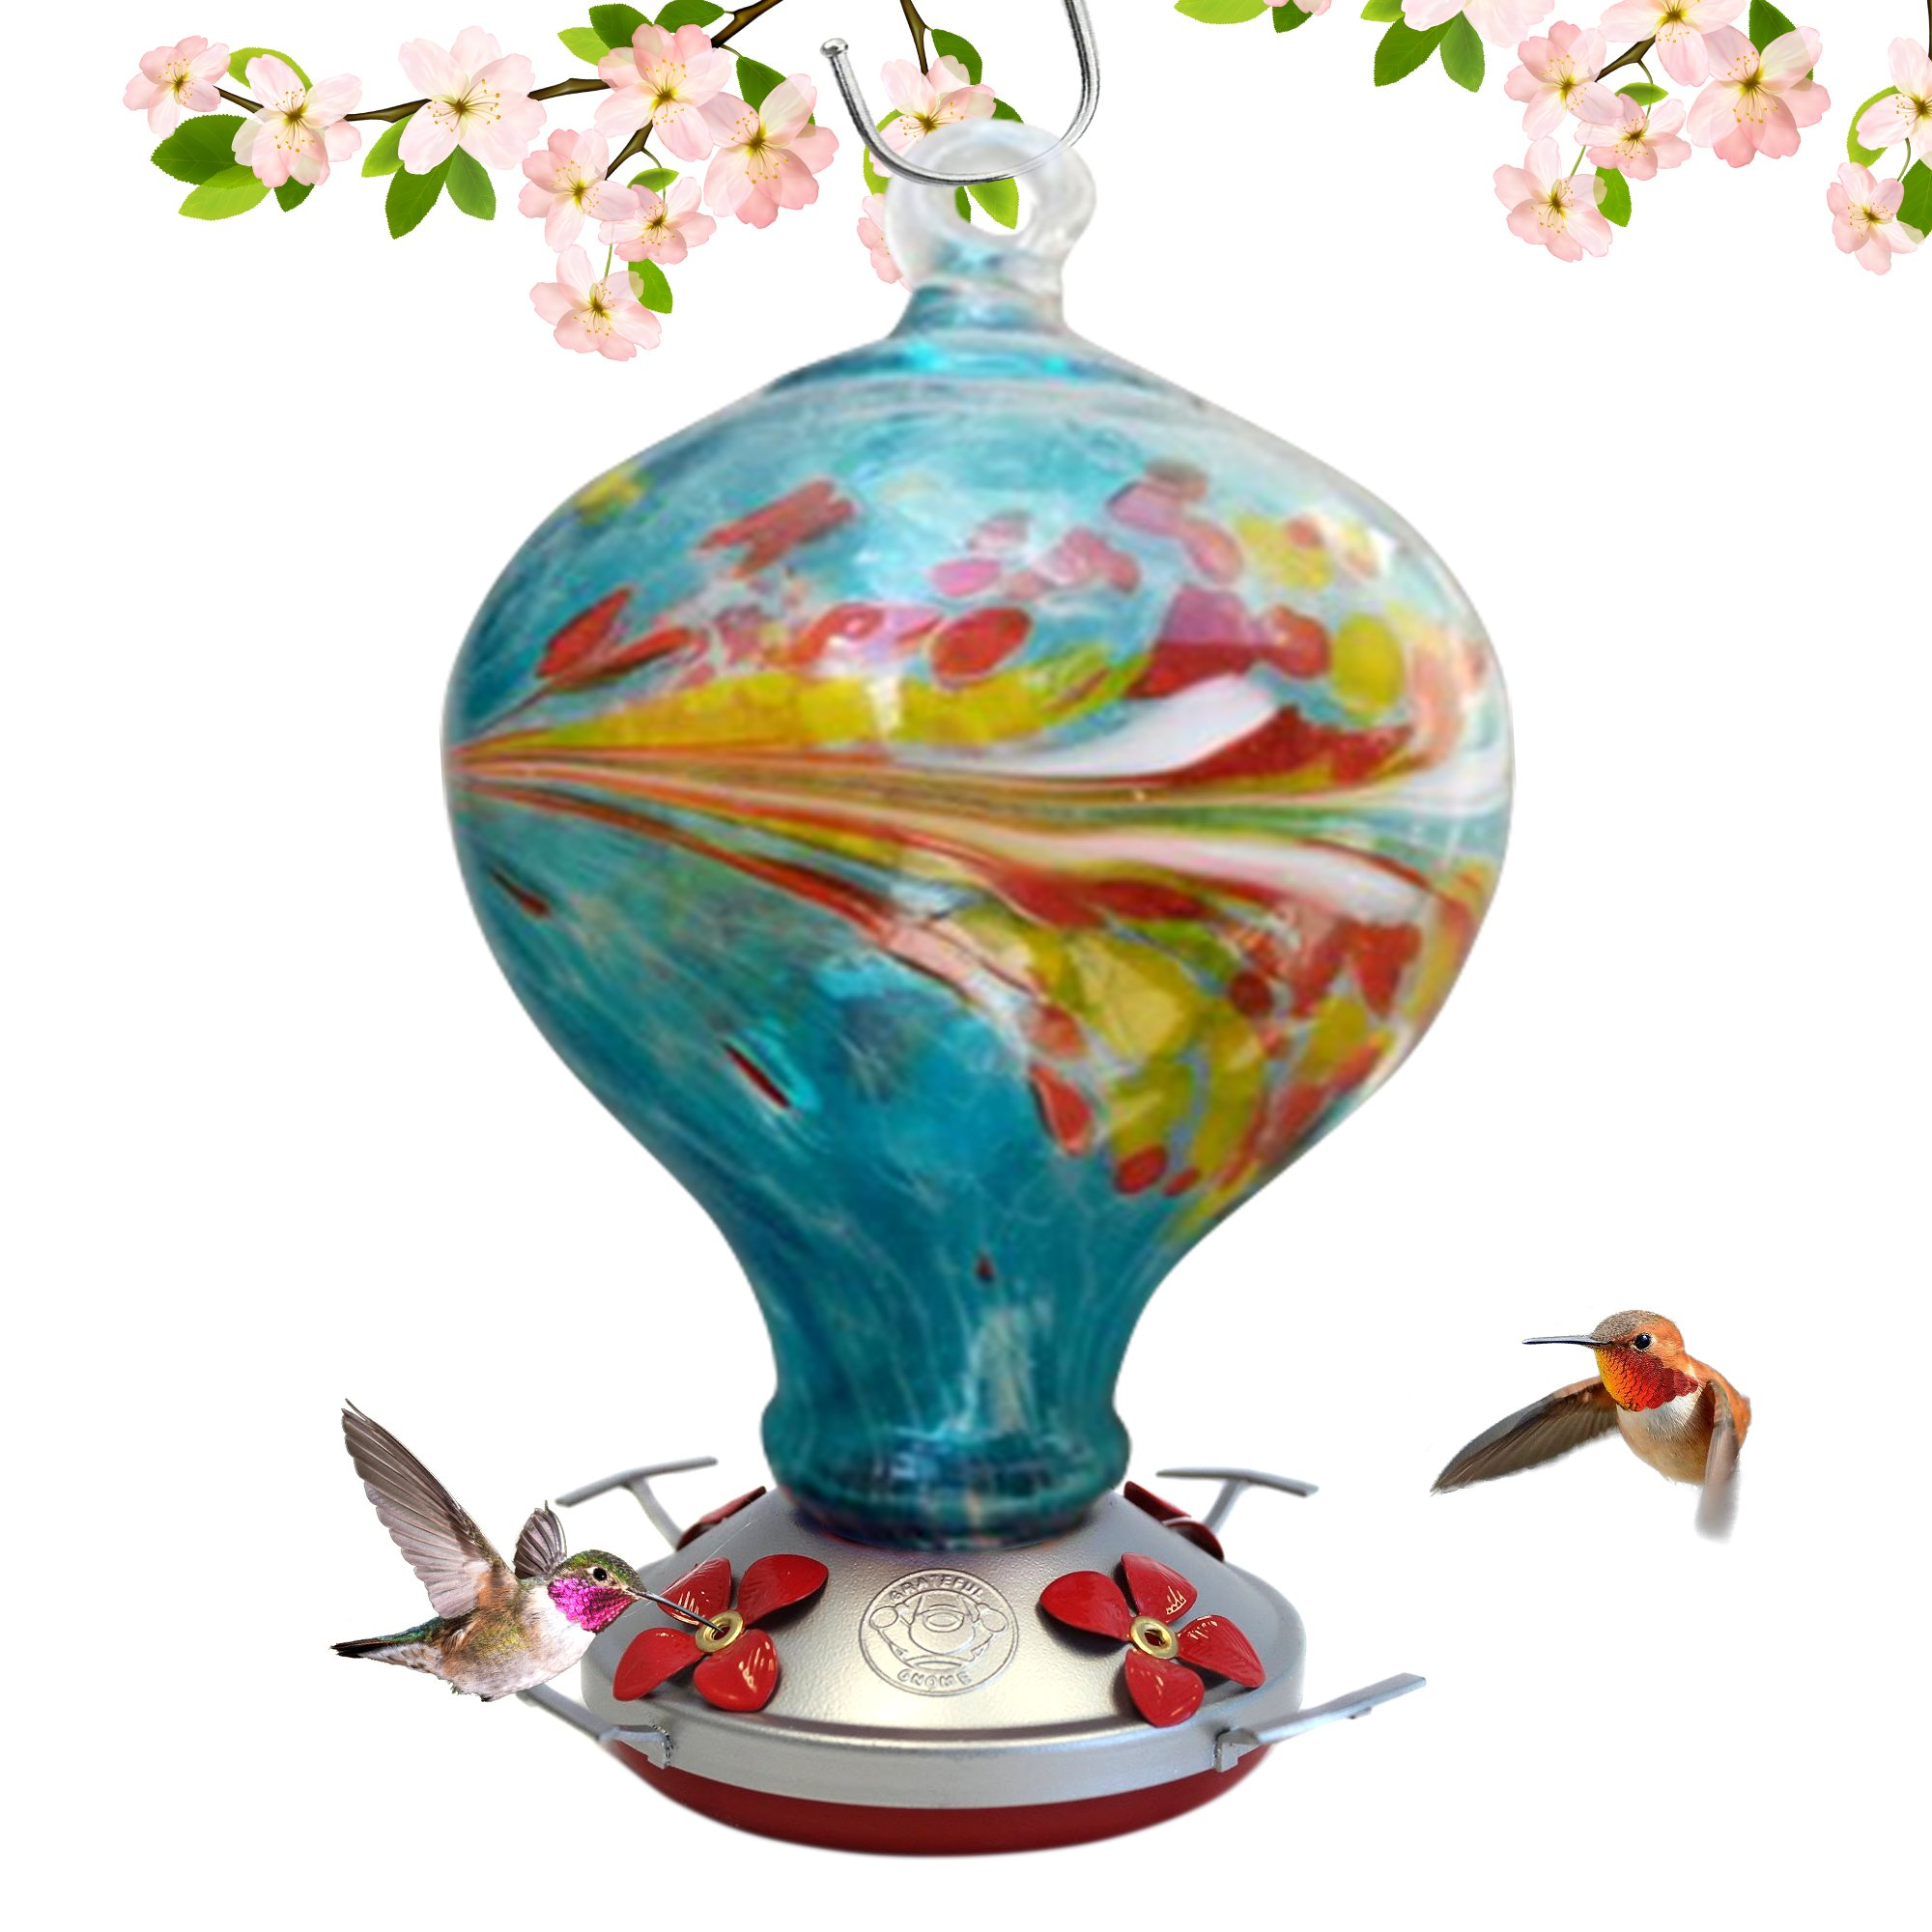 Grateful Gnome - Hummingbird Feeder - Hand Blown Glass - Blue Egg with Flowers - 36 Fluid Ounces by Grateful Gnome